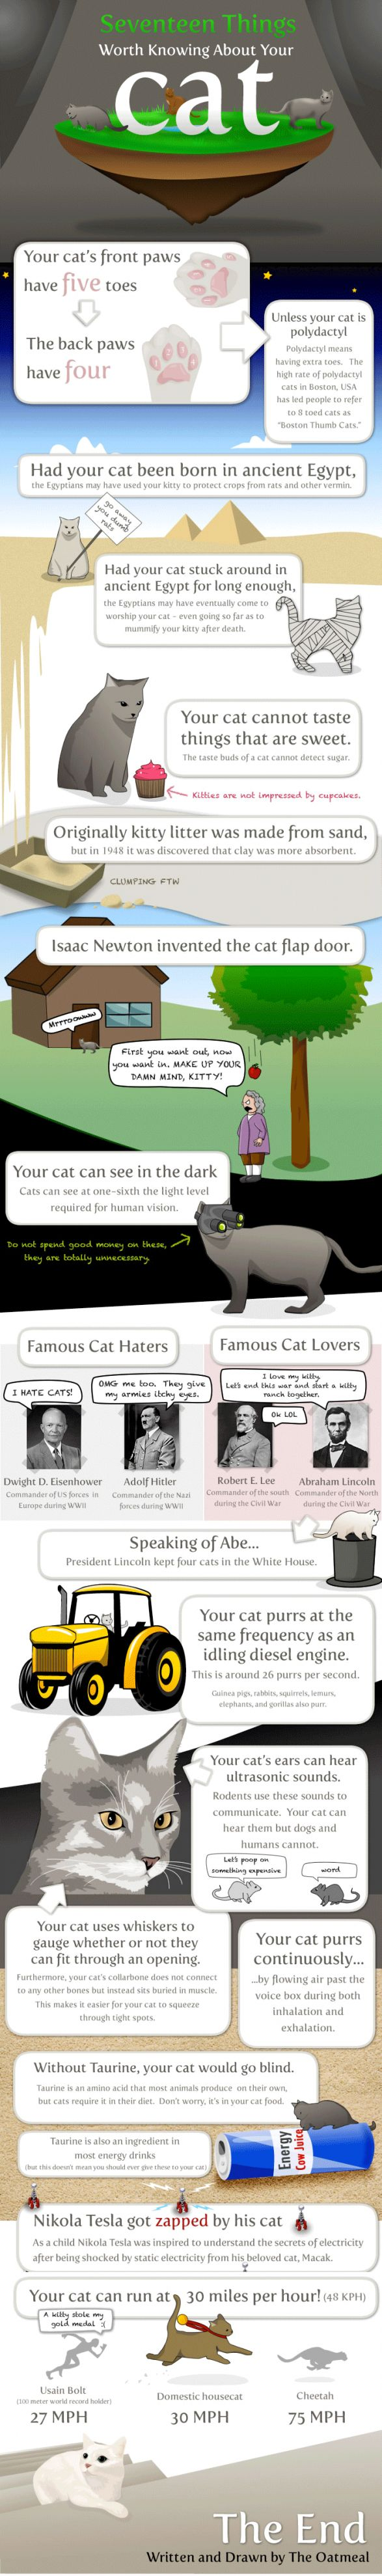 The Oatmeal: 17 Things Worth Knowing About Your Cat infographic